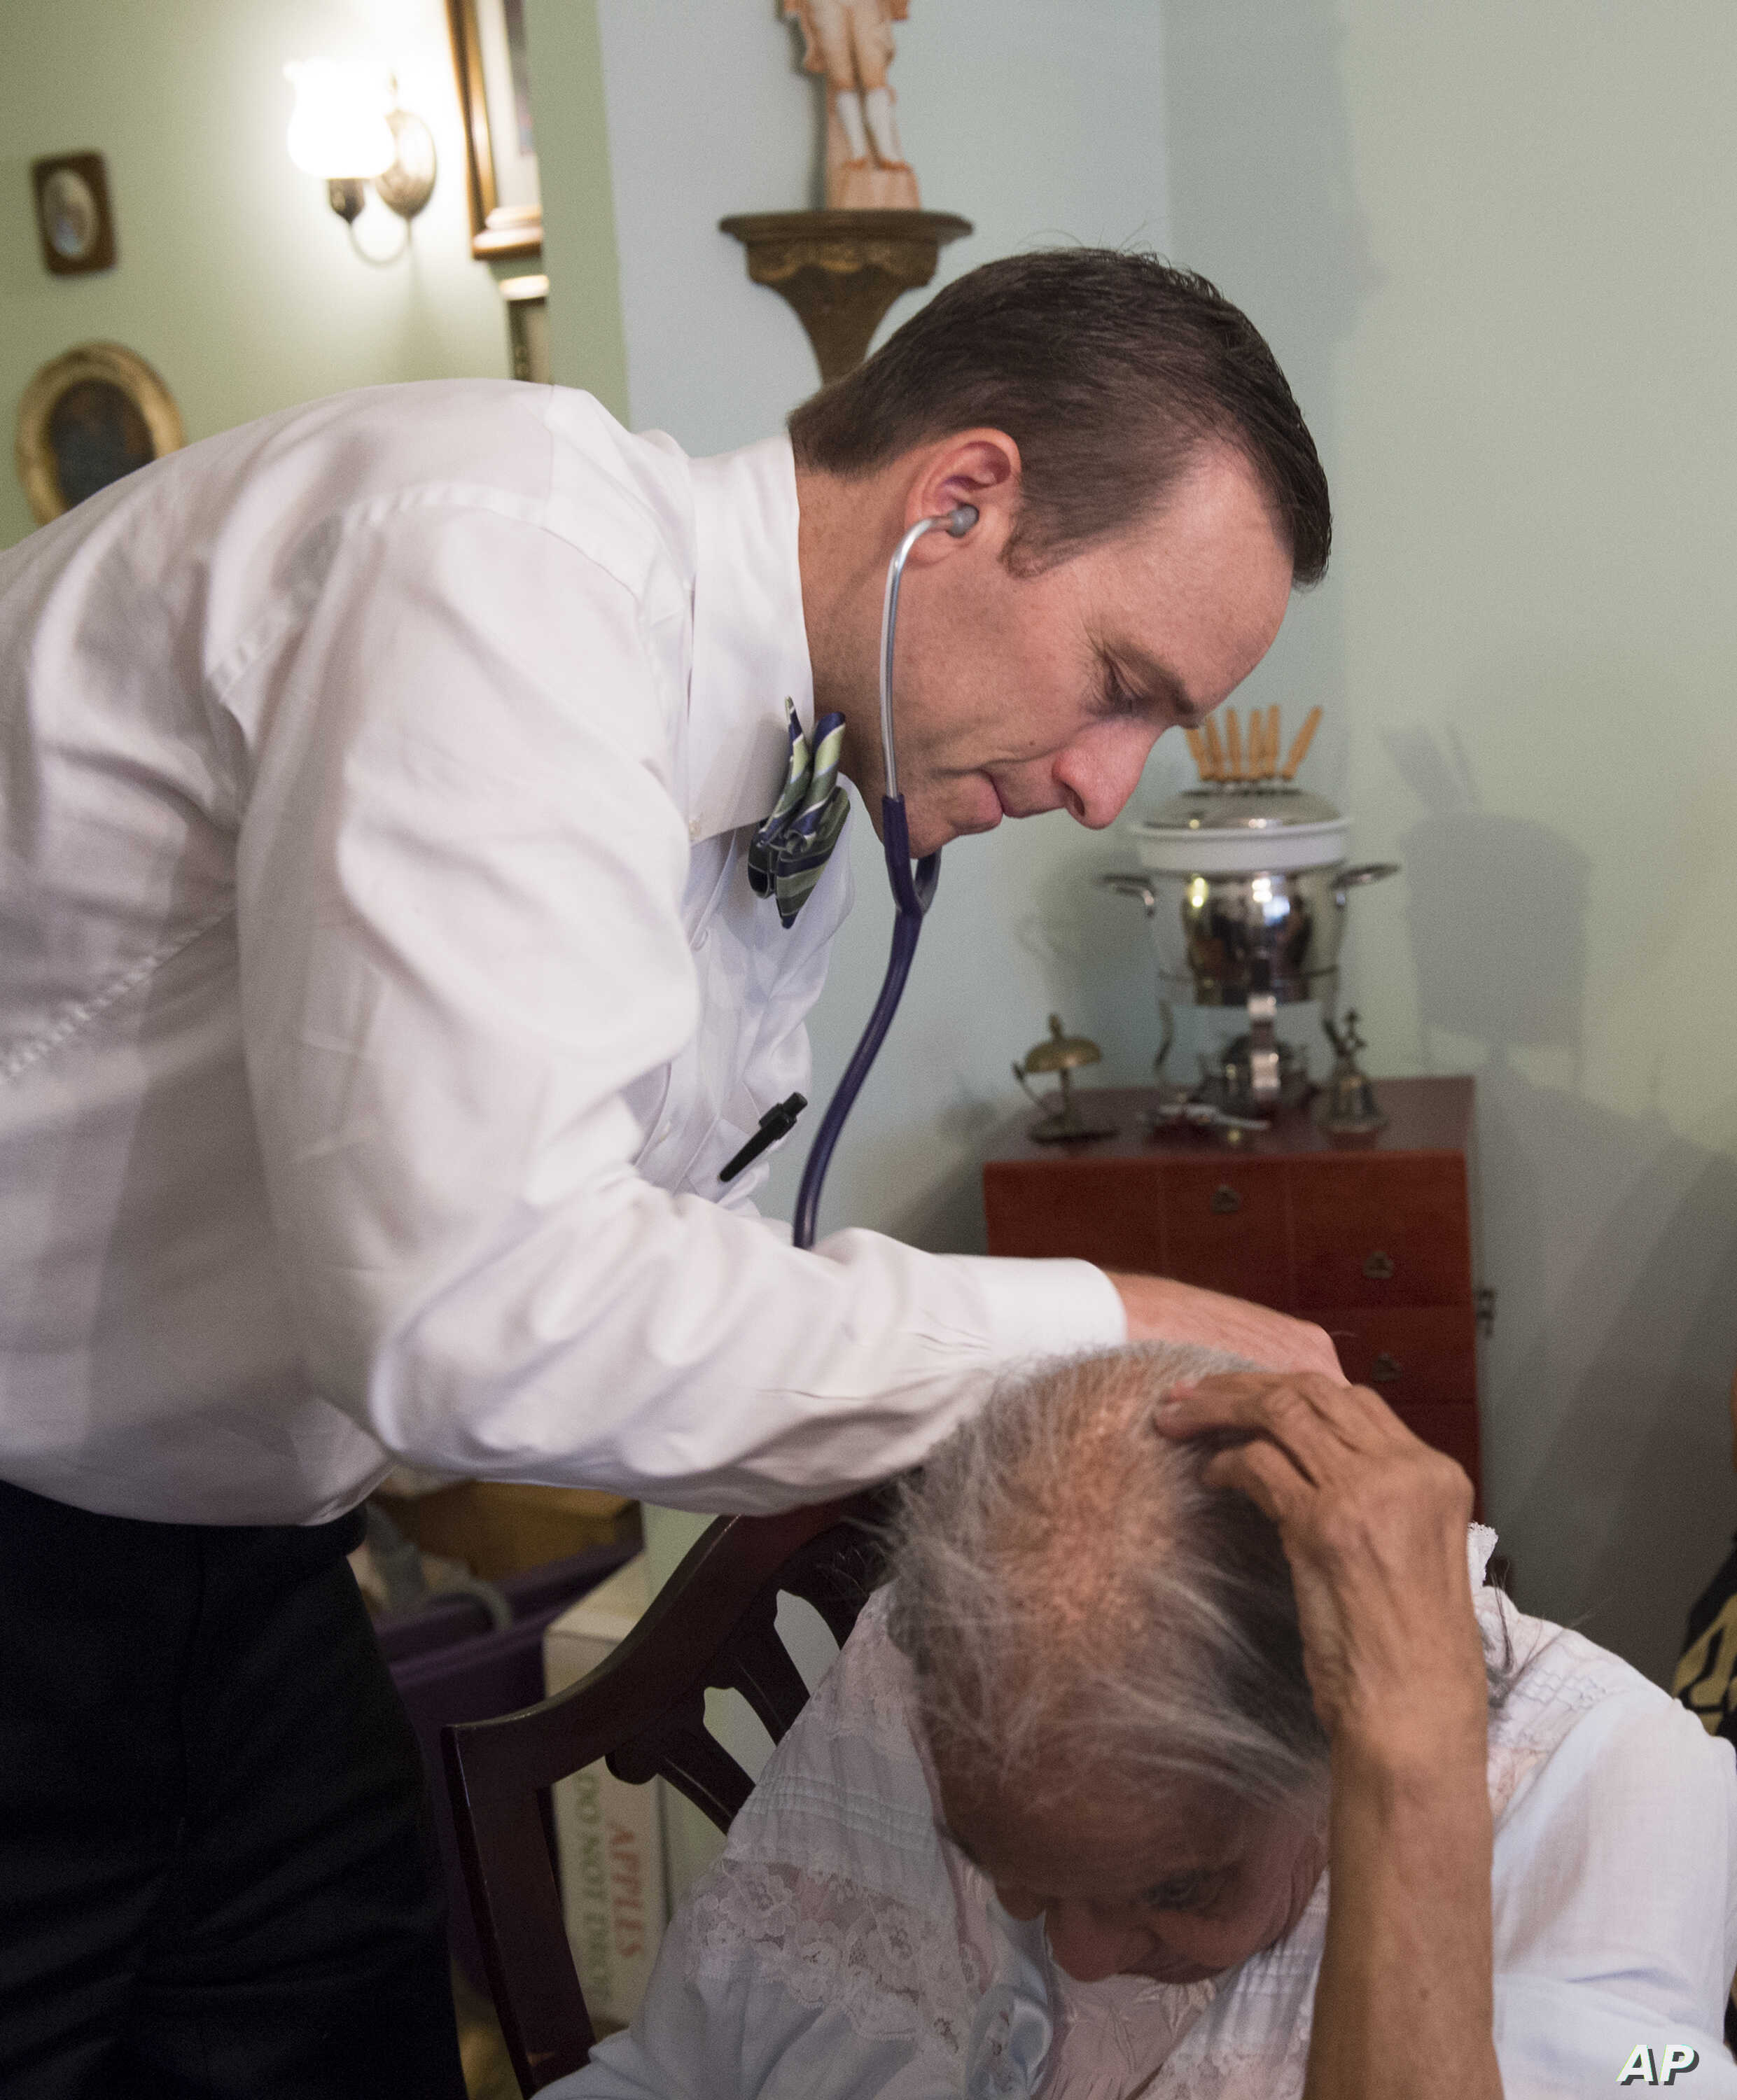 FILE - Dr. Eric De Jonge of Washington Hospital Center conducts a Medicare examination of a patient during a house call at her home in Washington, Aug. 7, 2014.